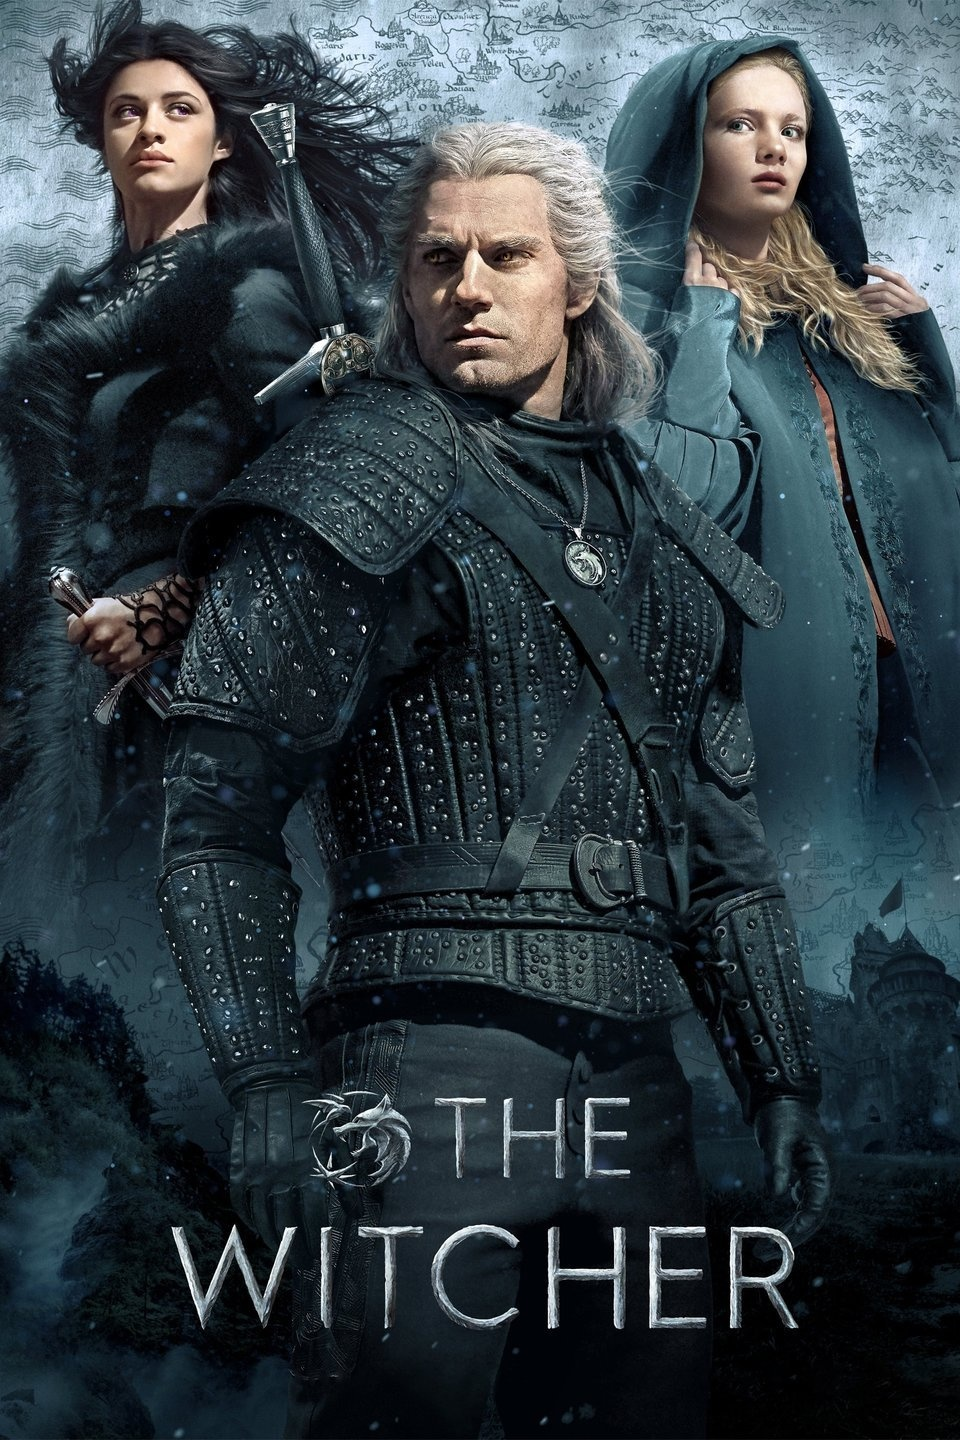 Move over Game of Thrones, want hier komt The Witcher!